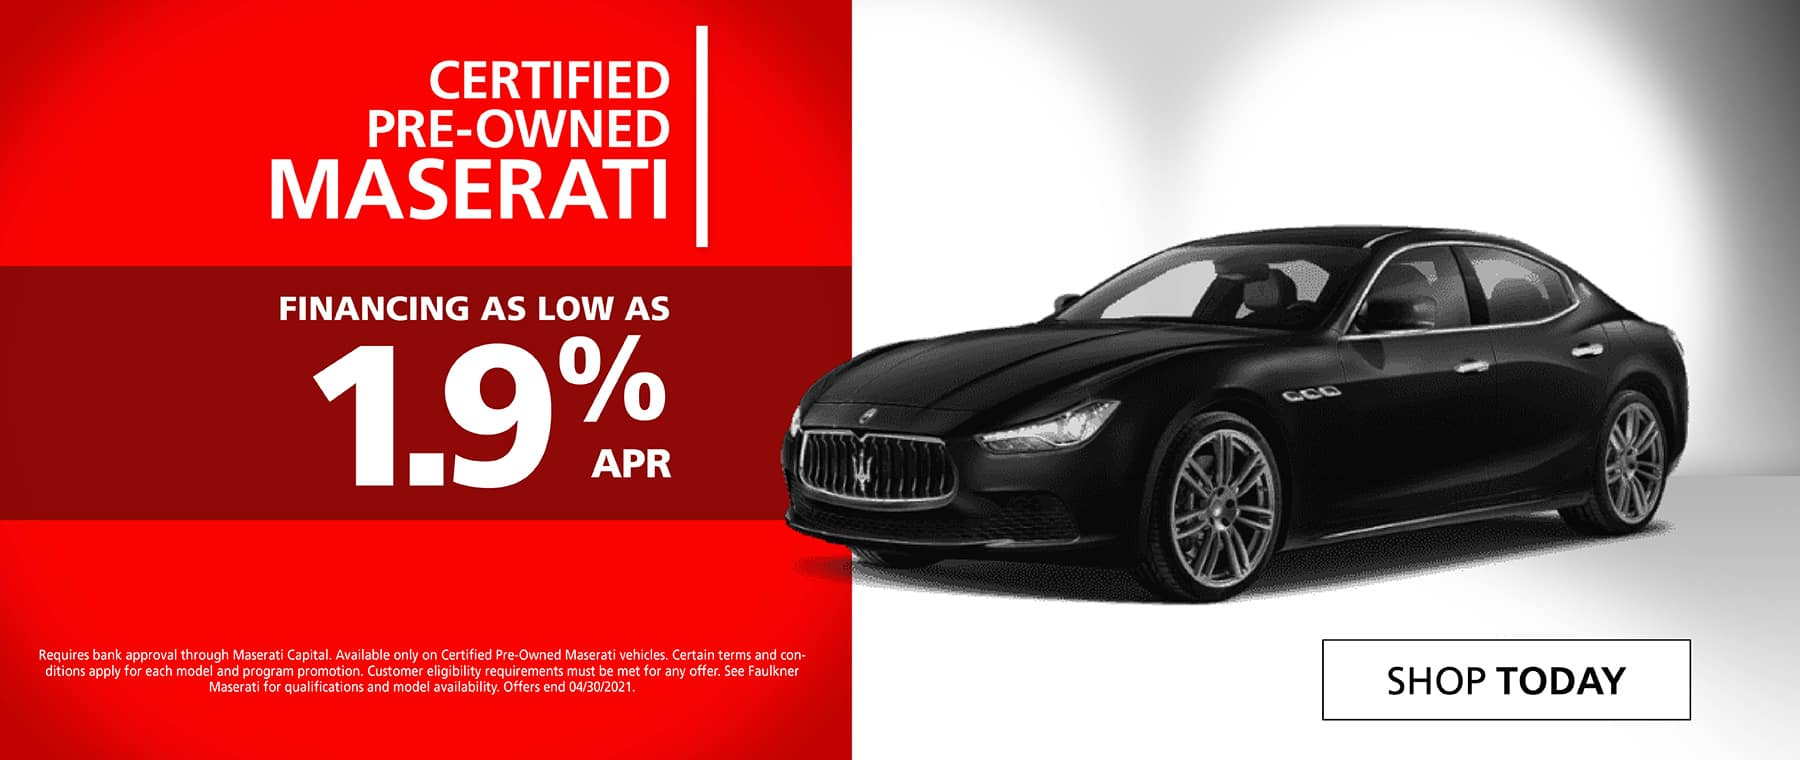 Maserati Certified Pre-Owned